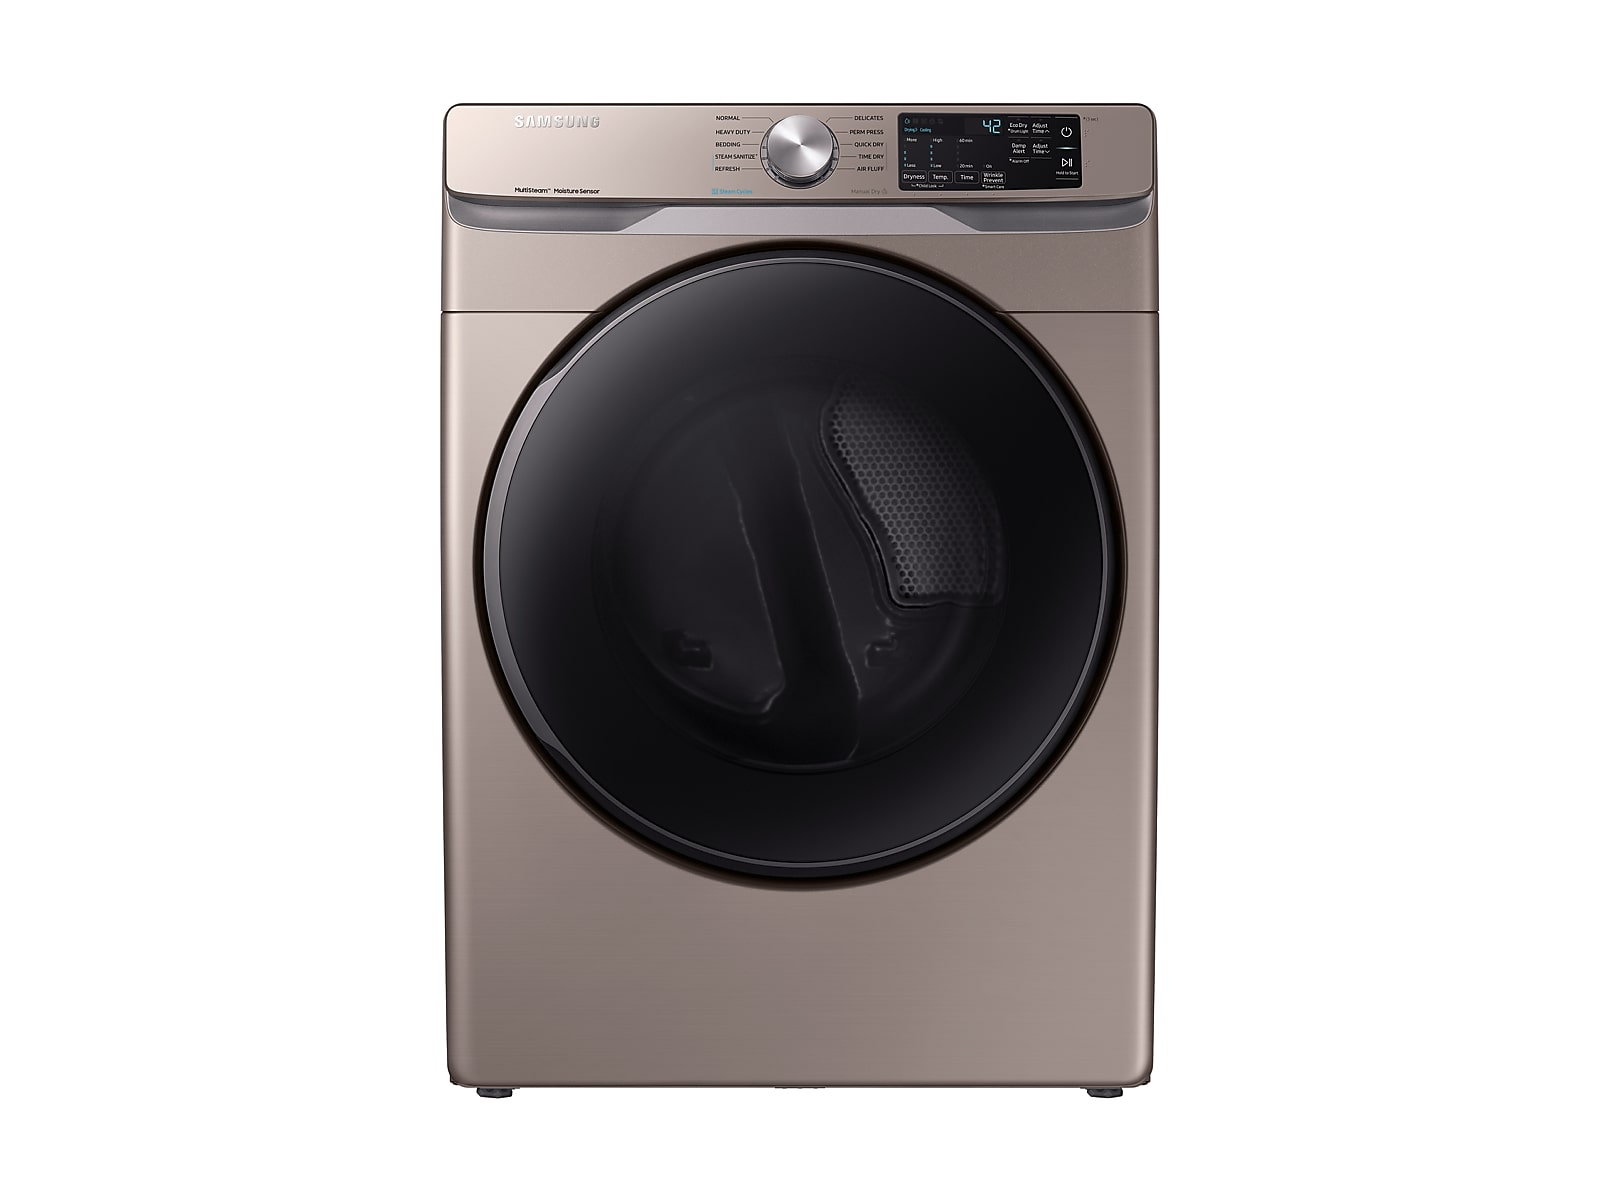 Samsung coupon: Samsung 7.5 cu. ft. Electric Dryer with Steam Sanitize+ in Champagne(DVE45R6100C/A3)